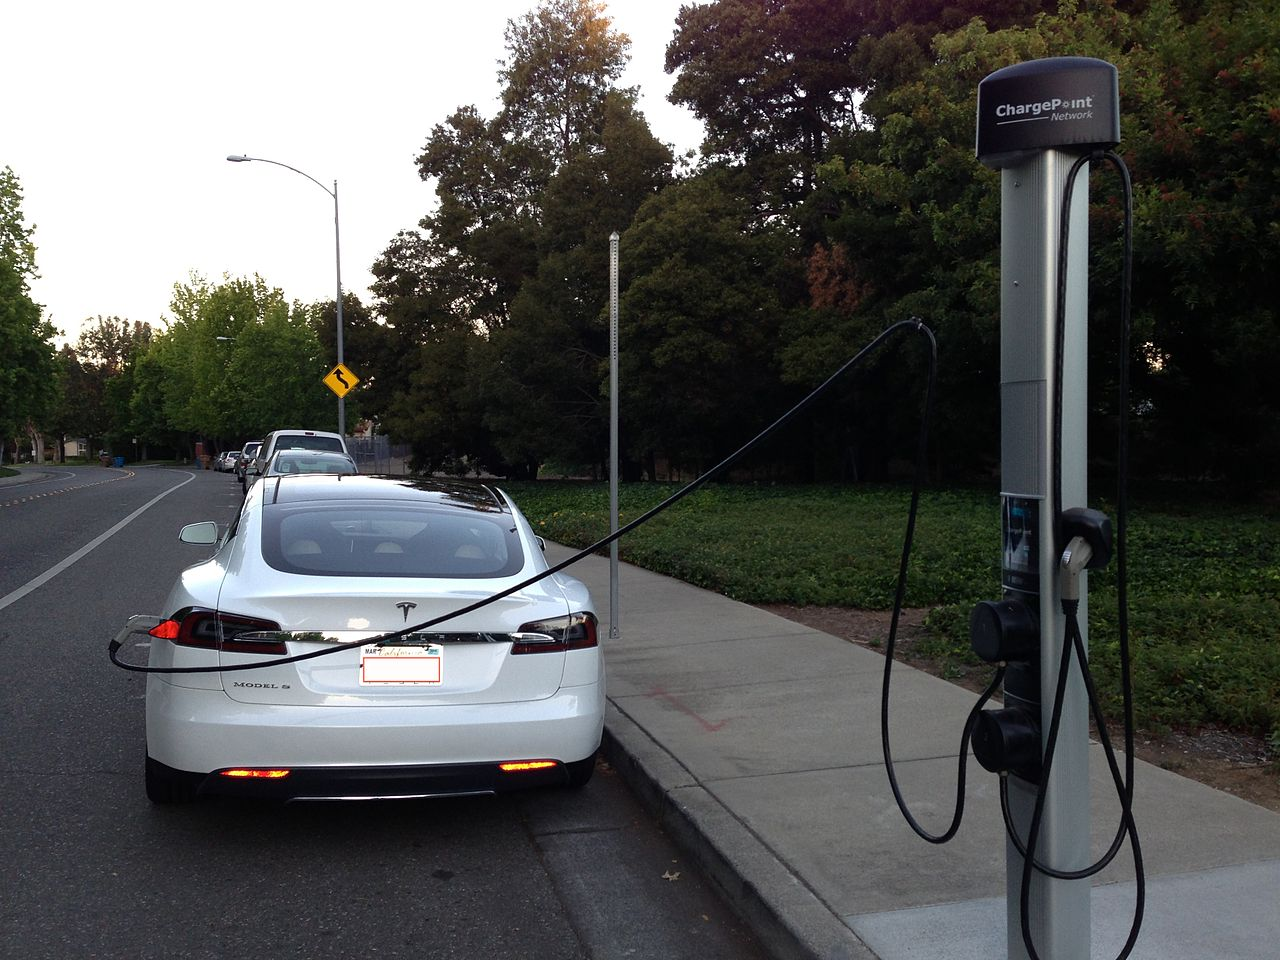 1280px-Tesla_Model_S_being_Charged_at_a_ChargePoint..JPG